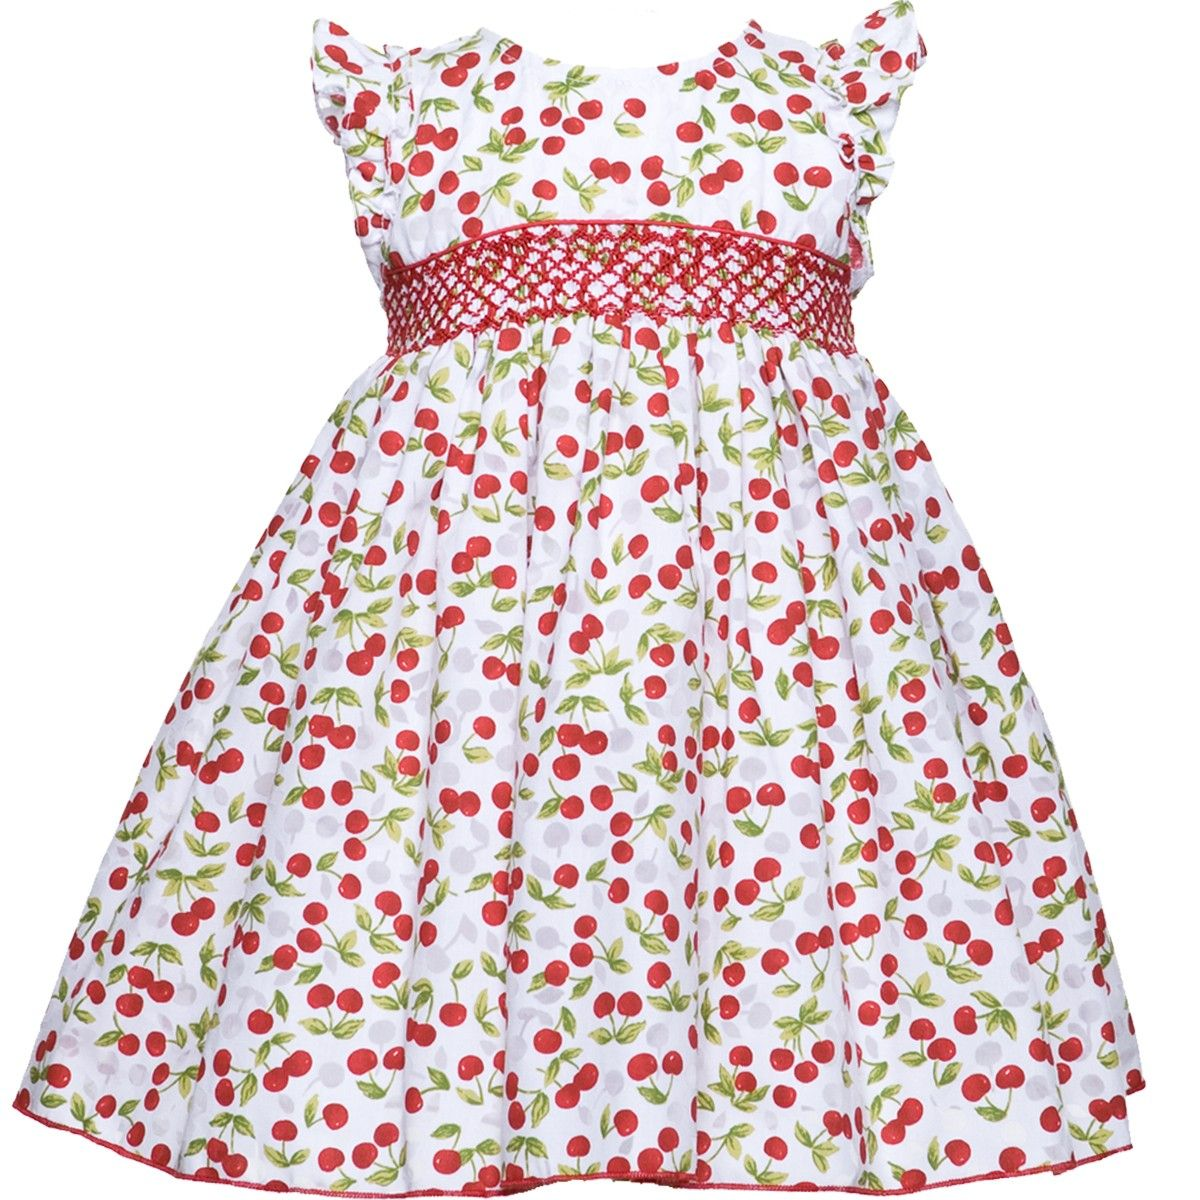 French Cherries Hand Smocked Dress | Smocked | Pinterest | Vestidos ...